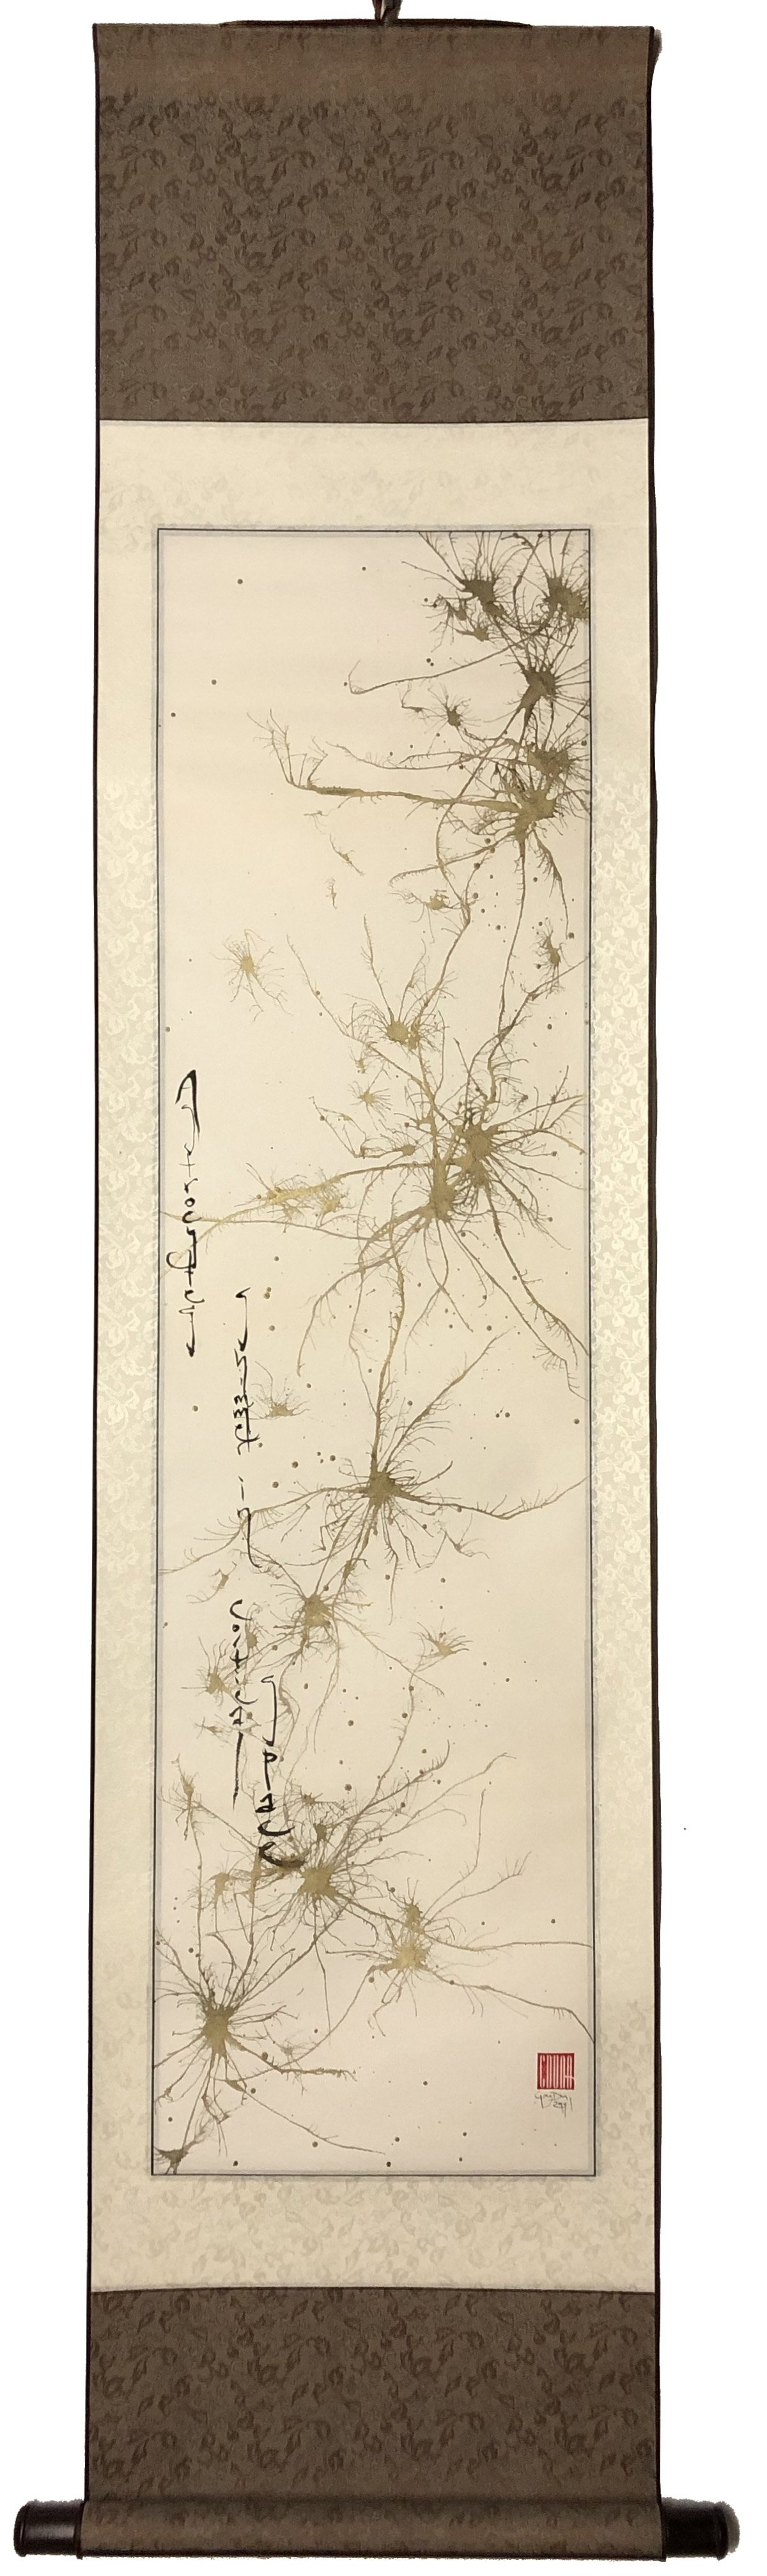 Astrocytes in Cortical Space Scroll- SOLD